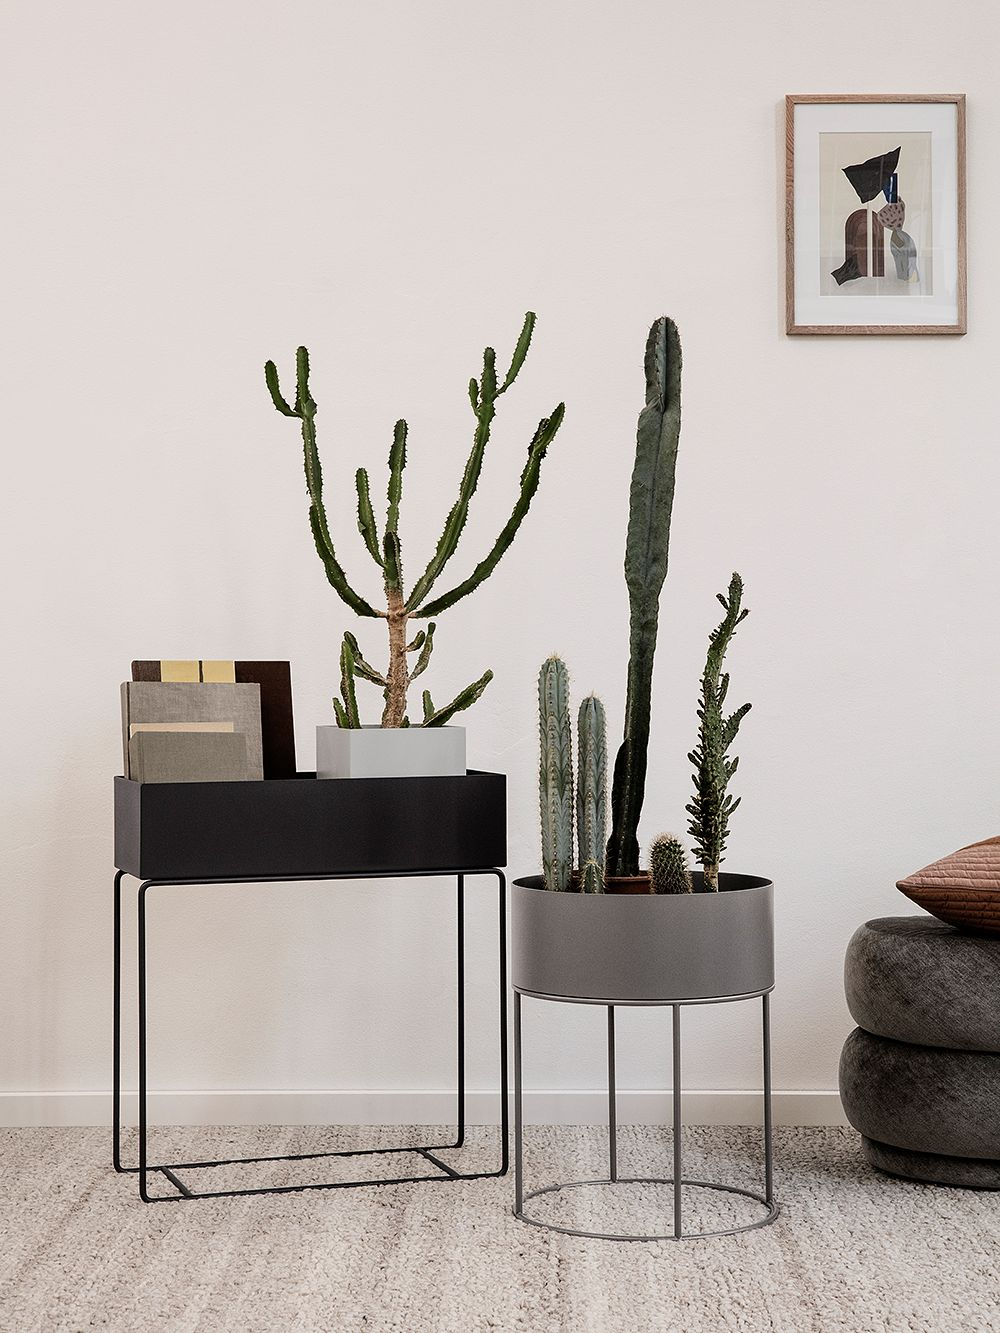 Ferm Living's round Plant Box in warm grey and rectangular Plant Box in black.